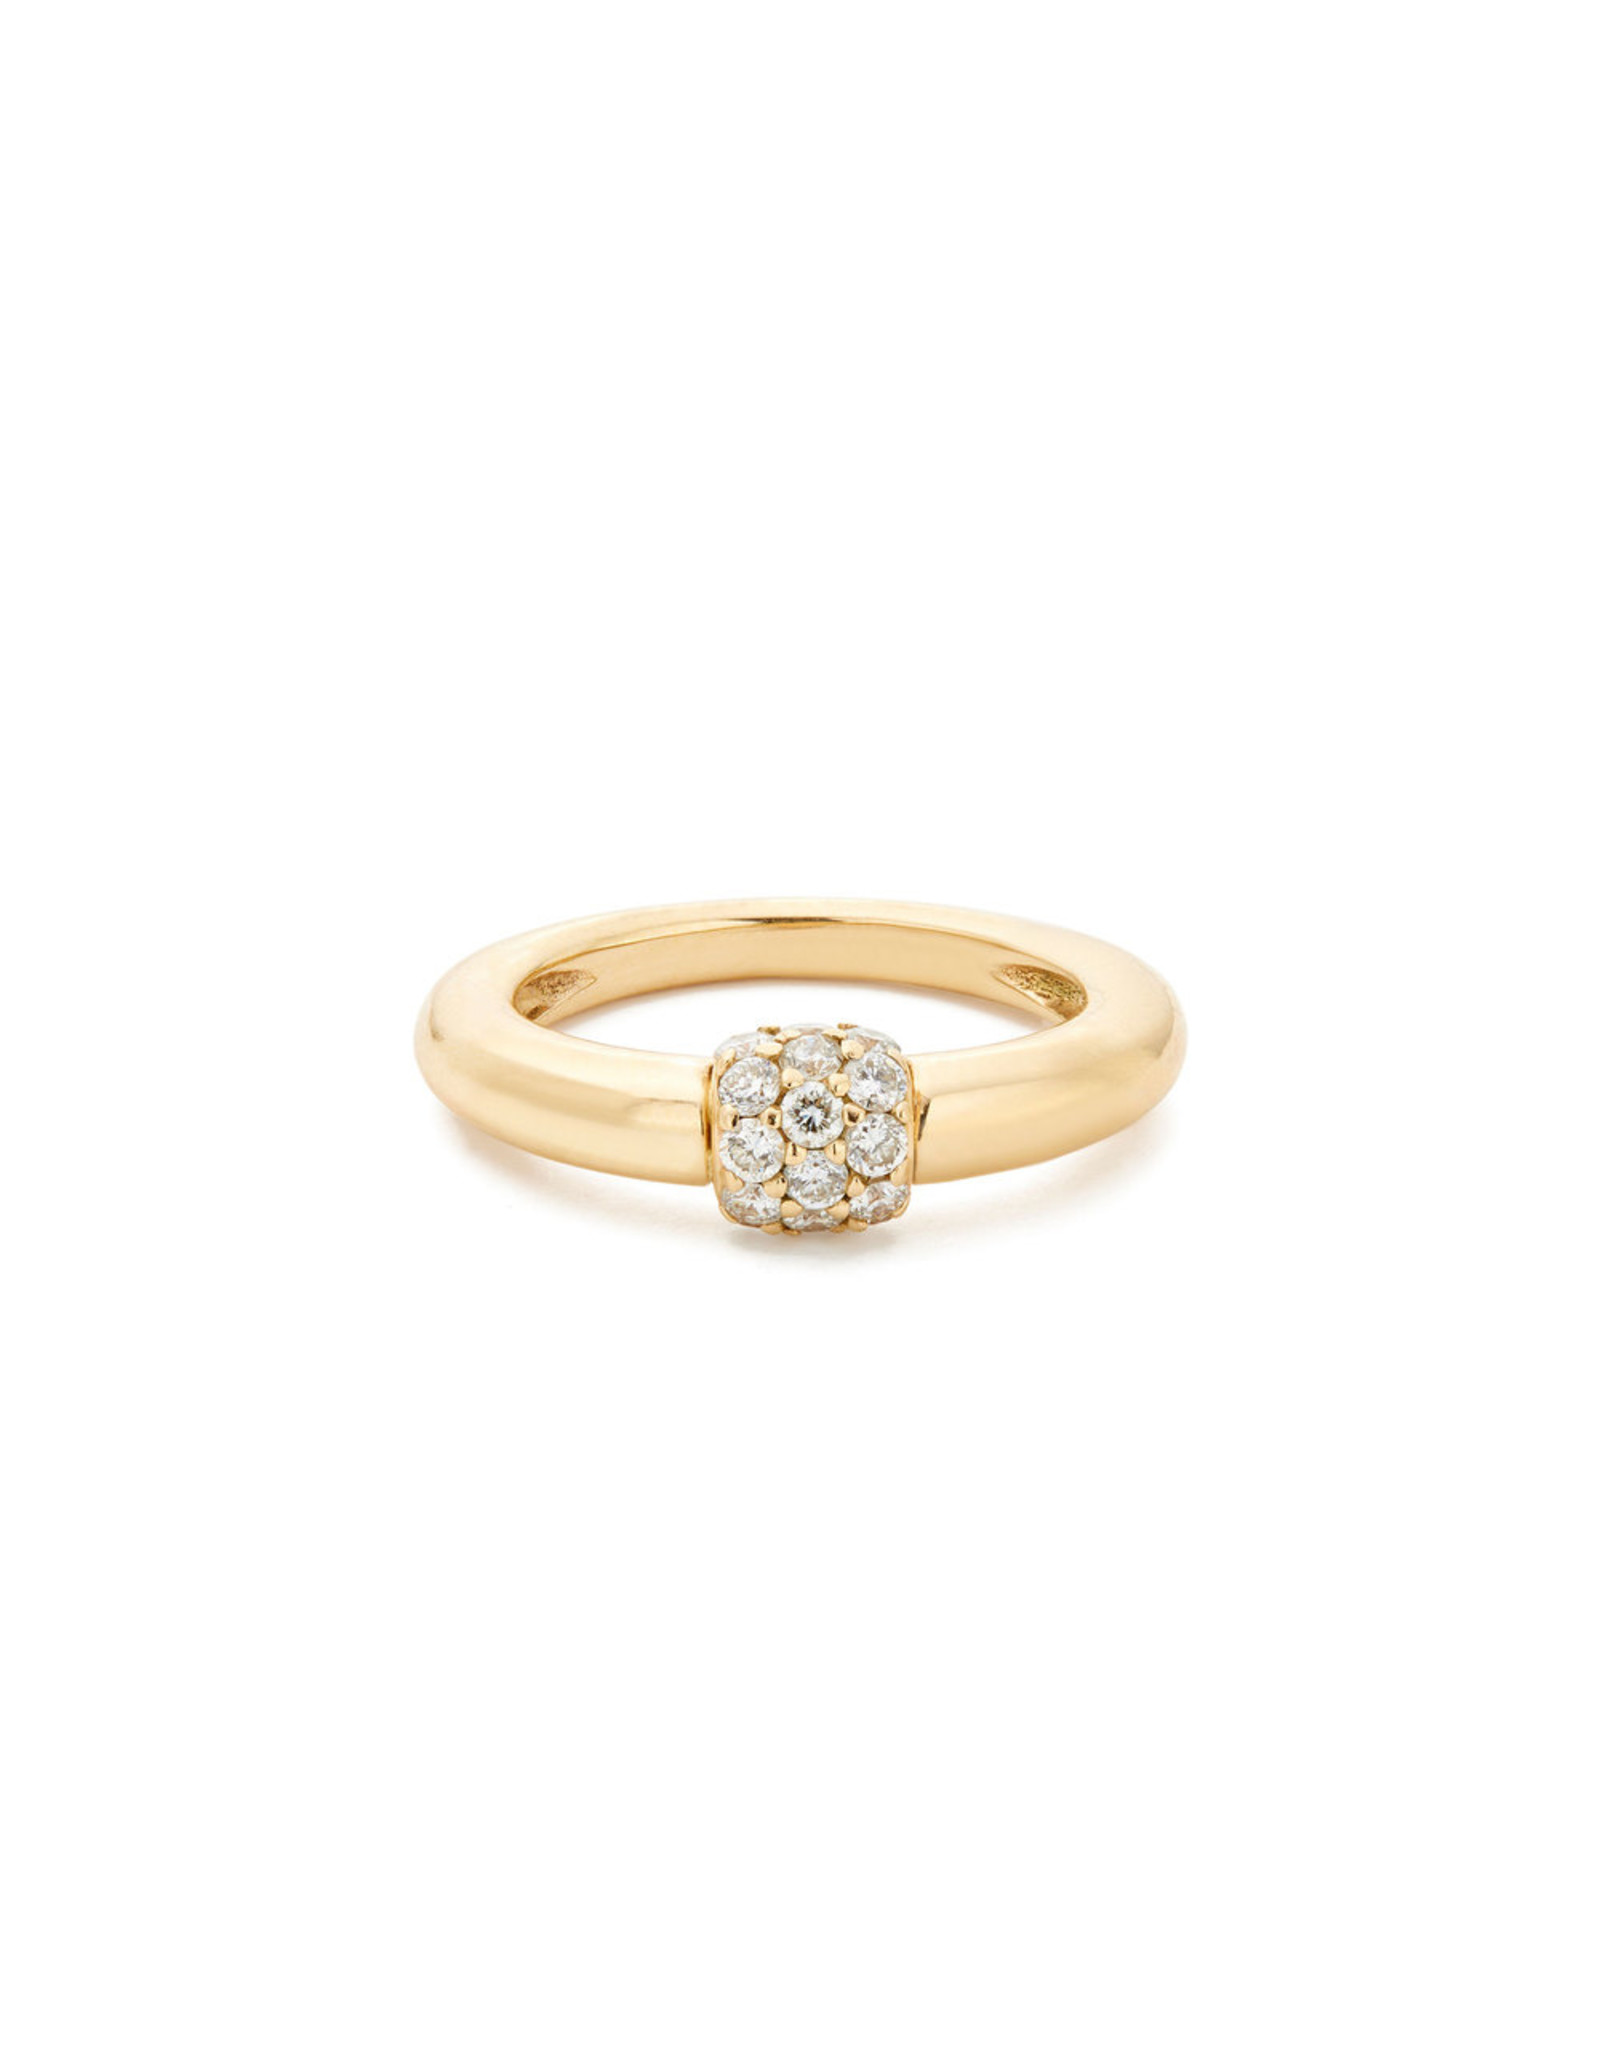 Sophie Ratner Sophie Ratner Triple Diamond Domed Ring - Yellow Gold / Pave (Size: 7)